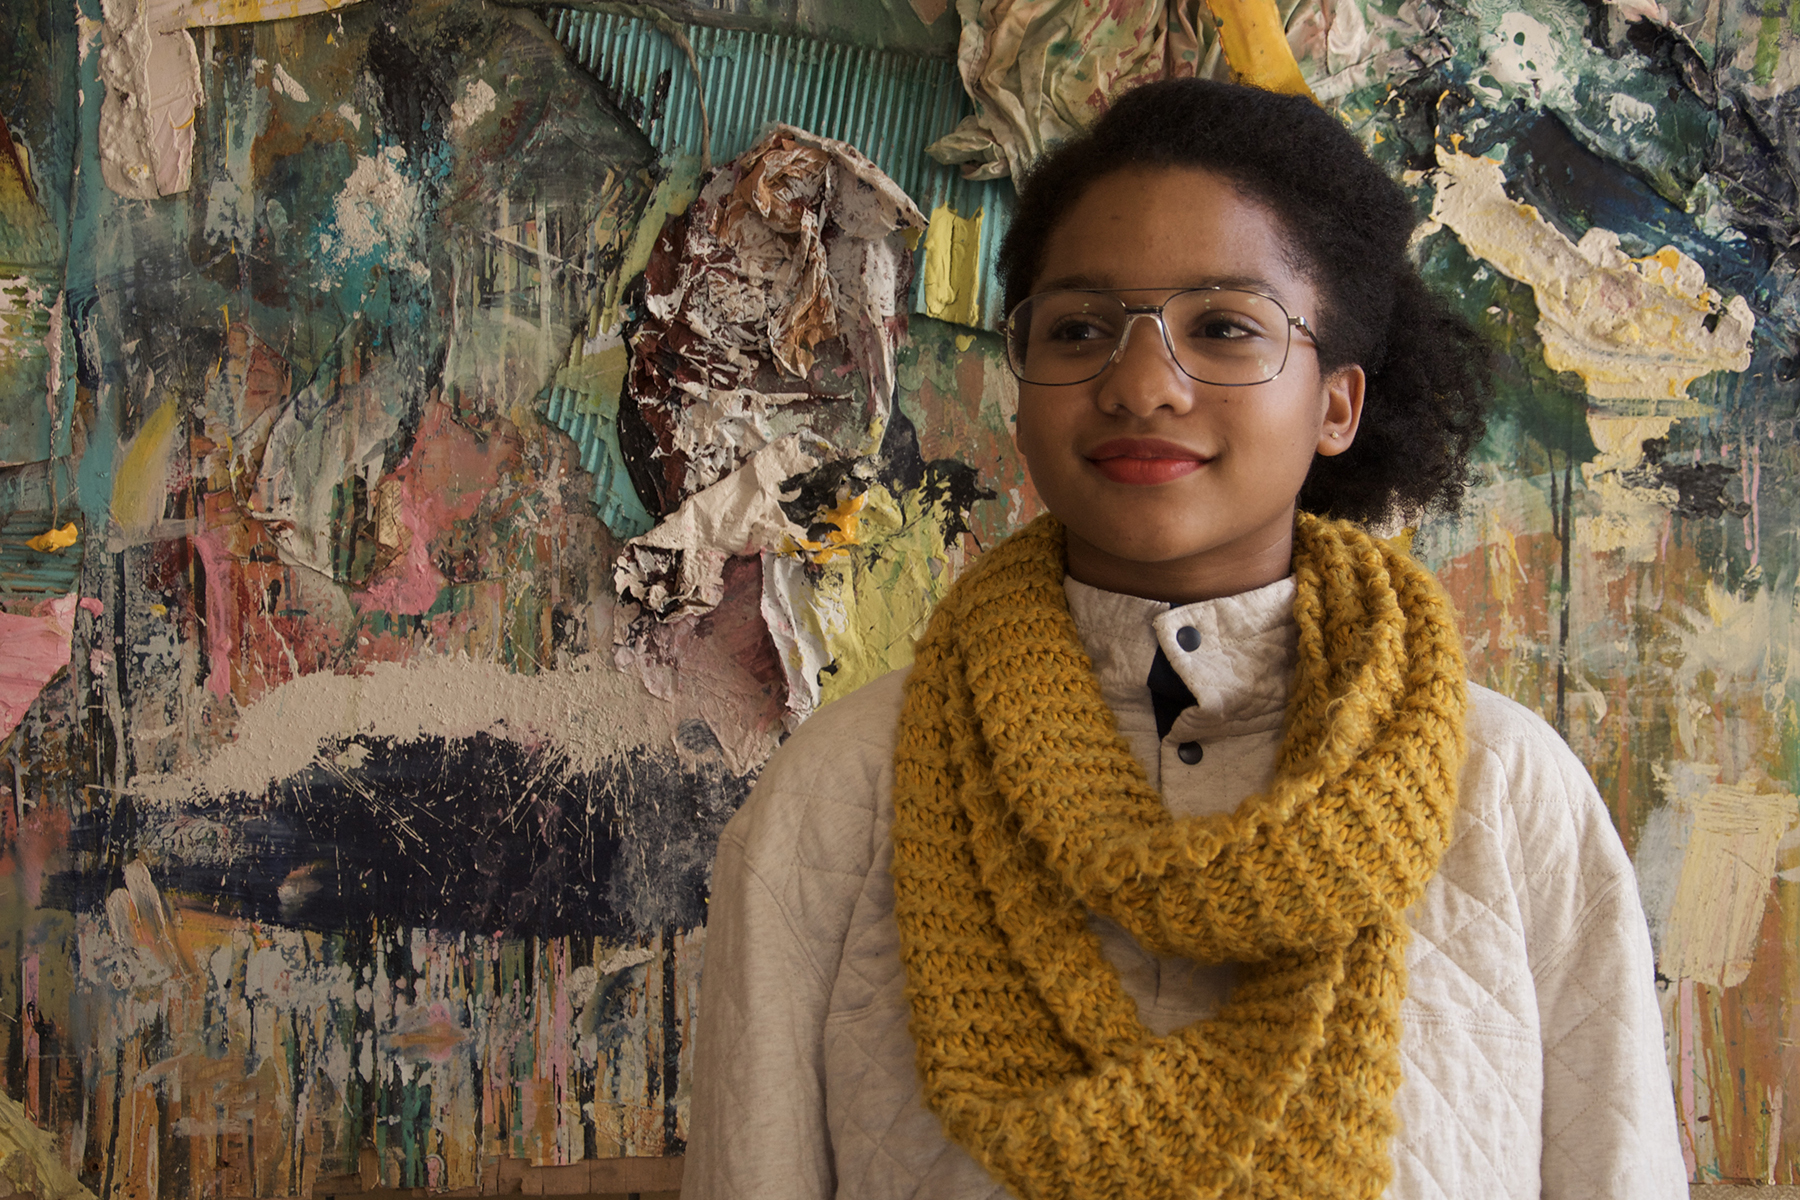 """MO NKOSI """"Whenever I'm upset, I like to visit Goodwill and get a 5 dollar sweater in a fall color."""""""